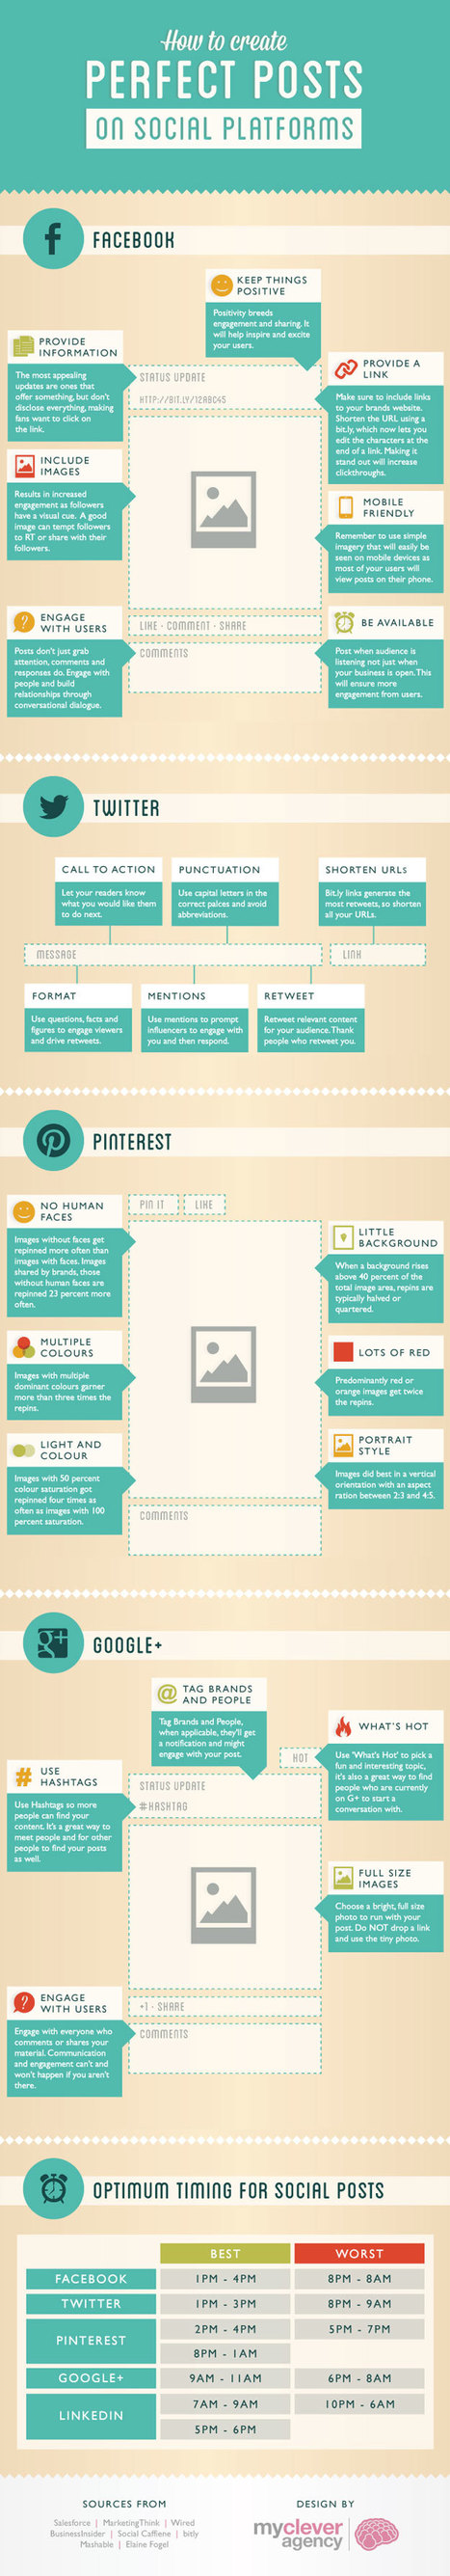 How To Create Effective Posts on the 4 Main Social Sites [Infographic] | SM | Scoop.it